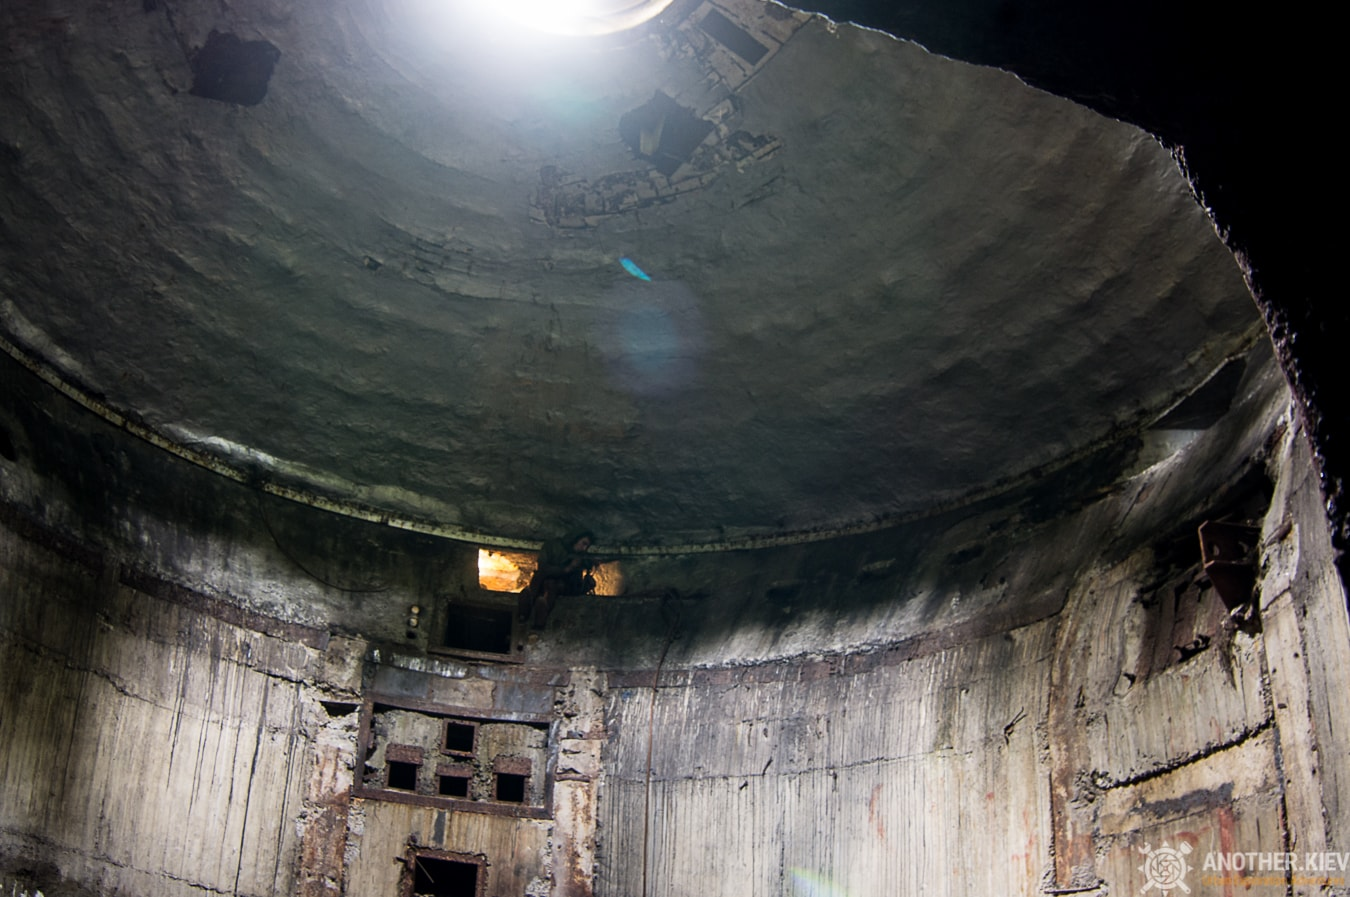 Under the dome covered abandoned missile shaft